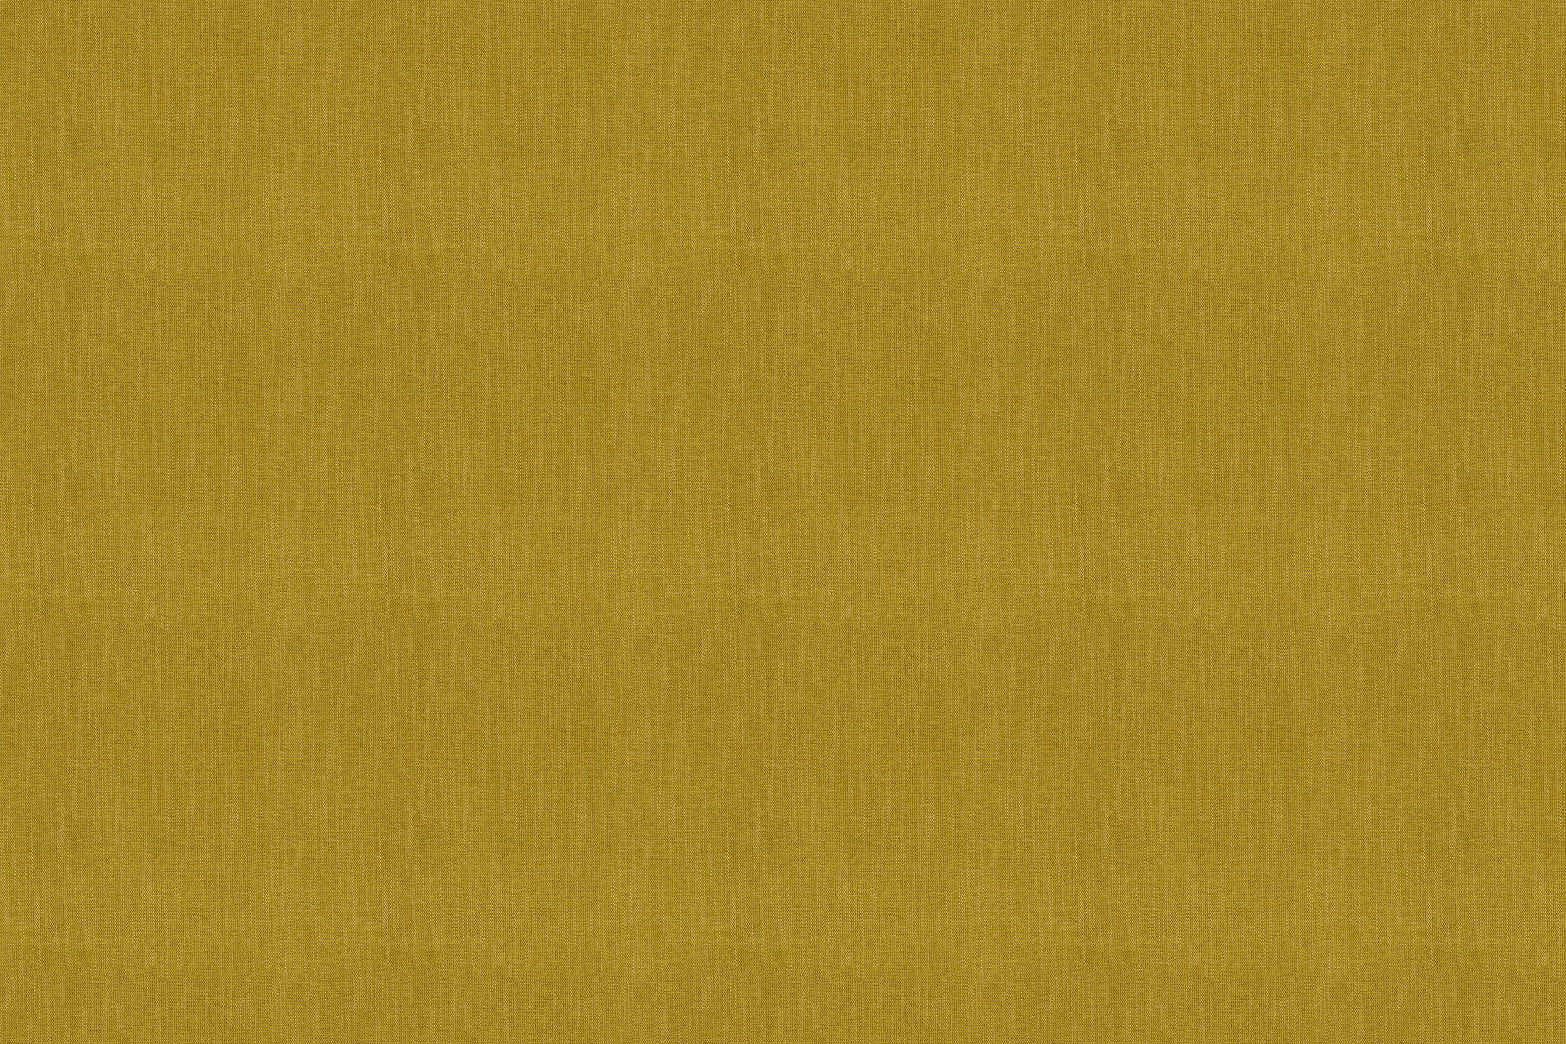 Home Decor 8\u0022x8\u0022 Fabric Swatch-IMAN Home Mustique Topaz